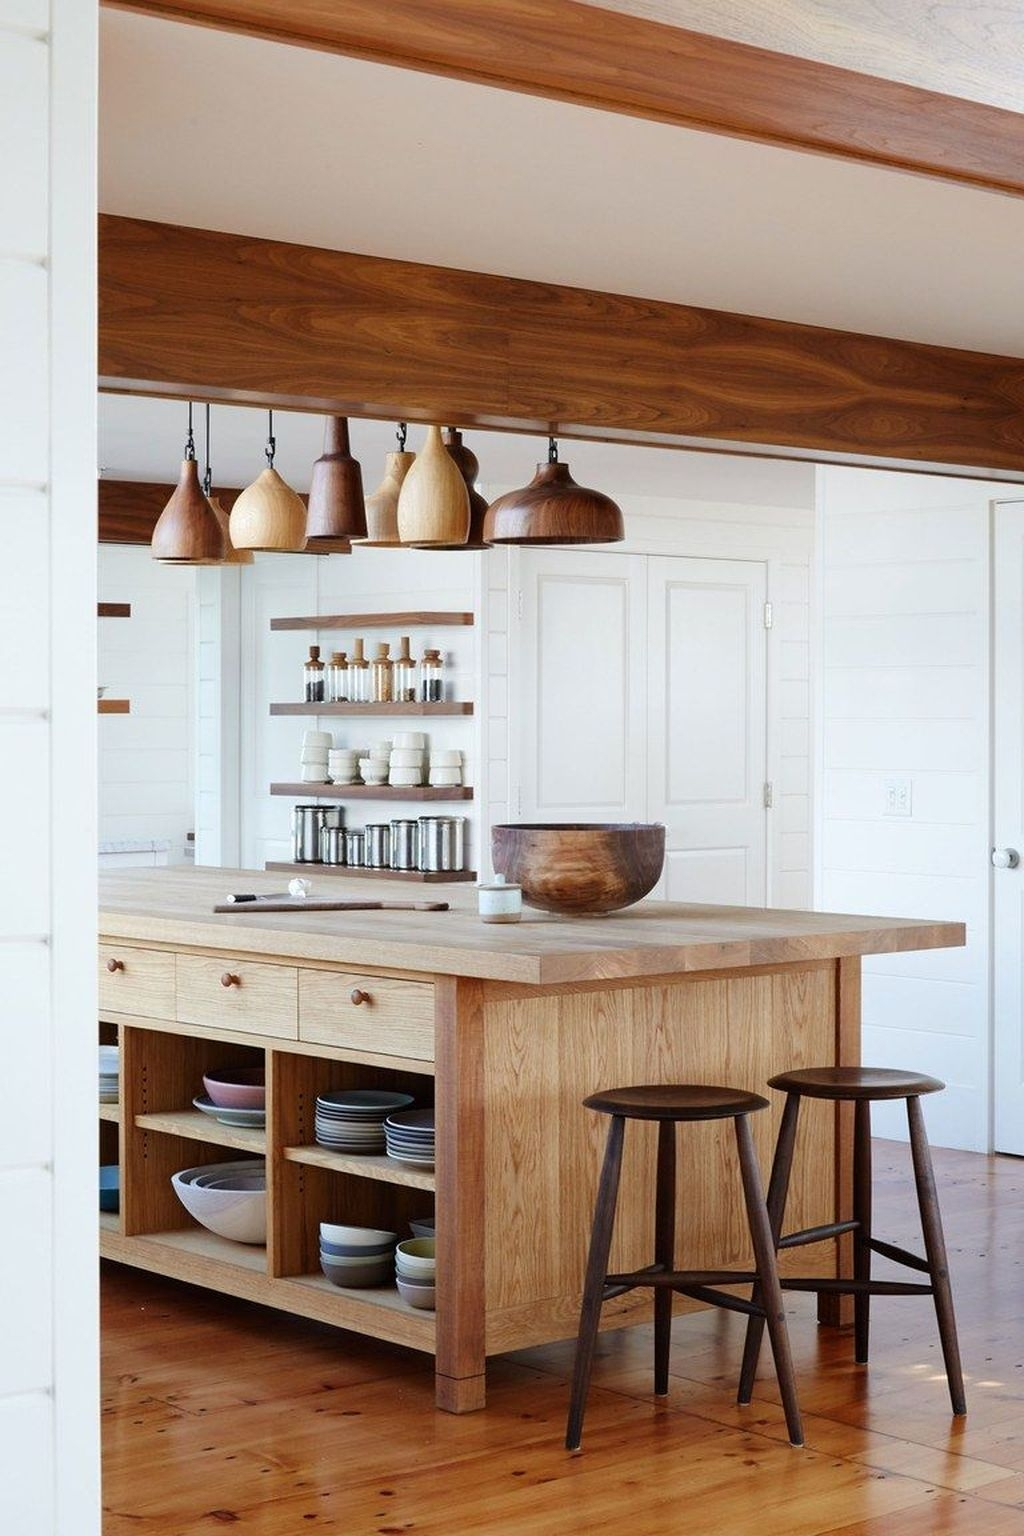 Awesome Rustic Kitchen Island Design Ideas 34